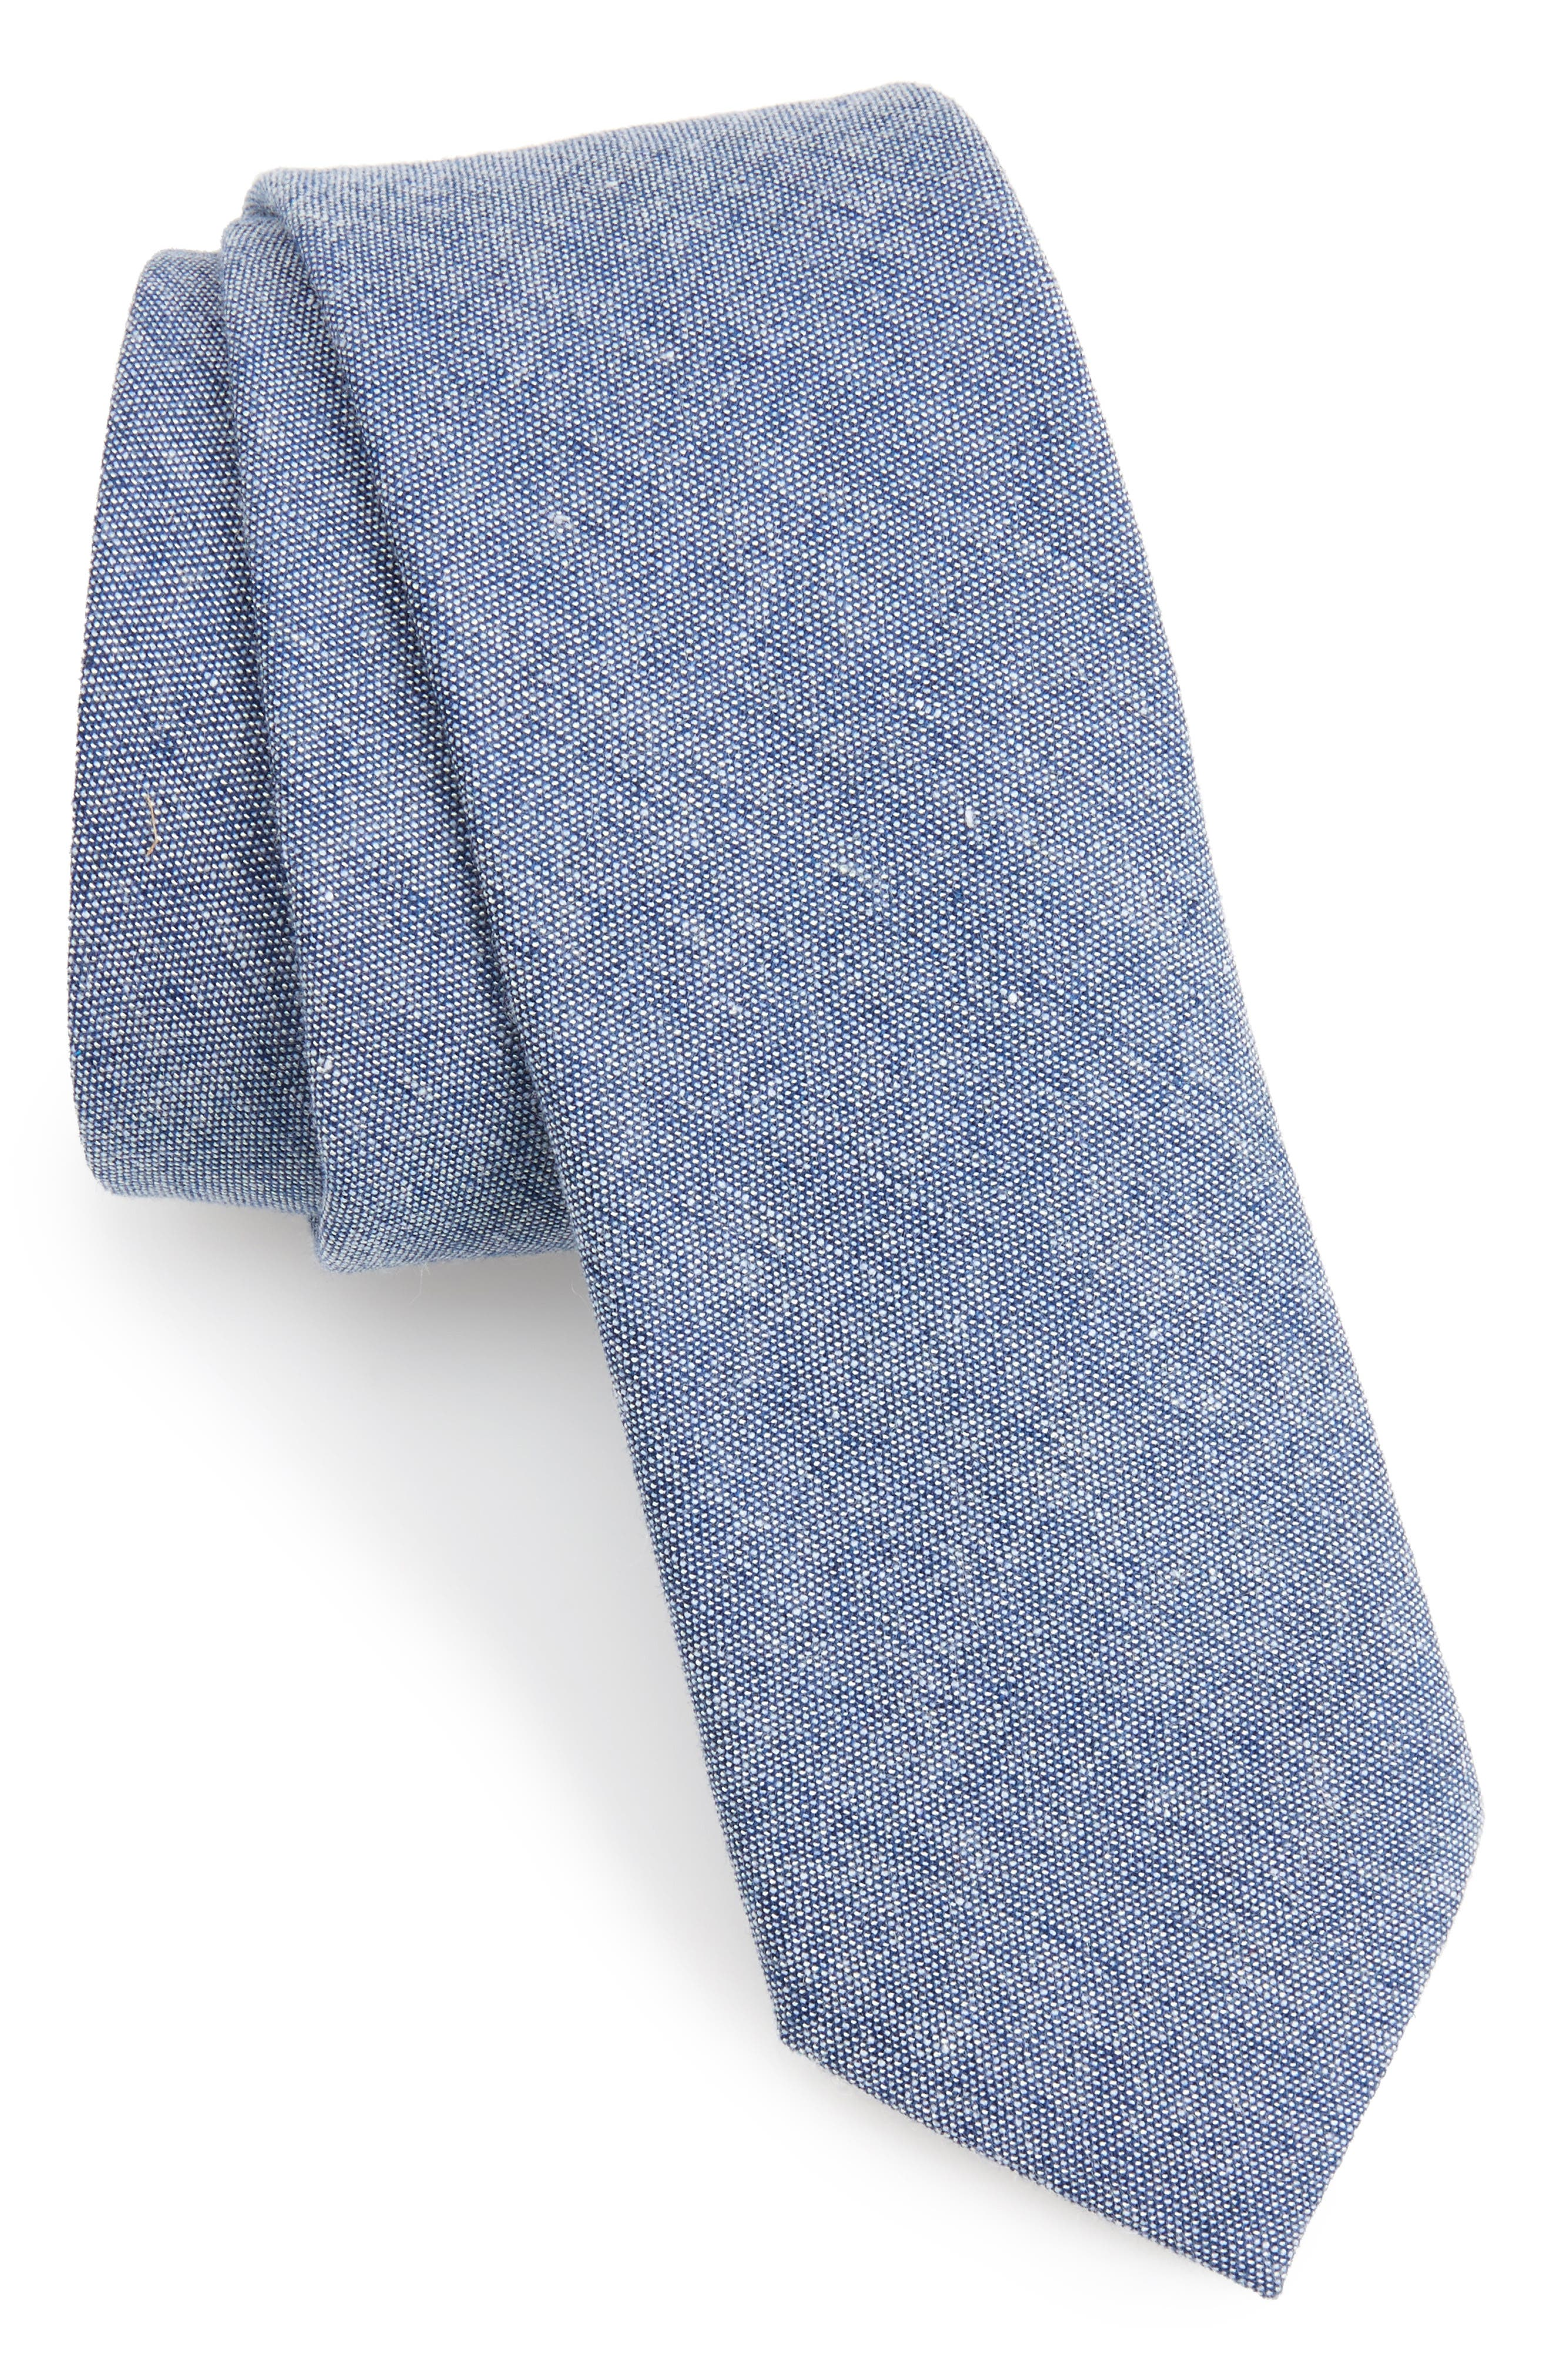 Textured Skinny Tie,                         Main,                         color, Navy